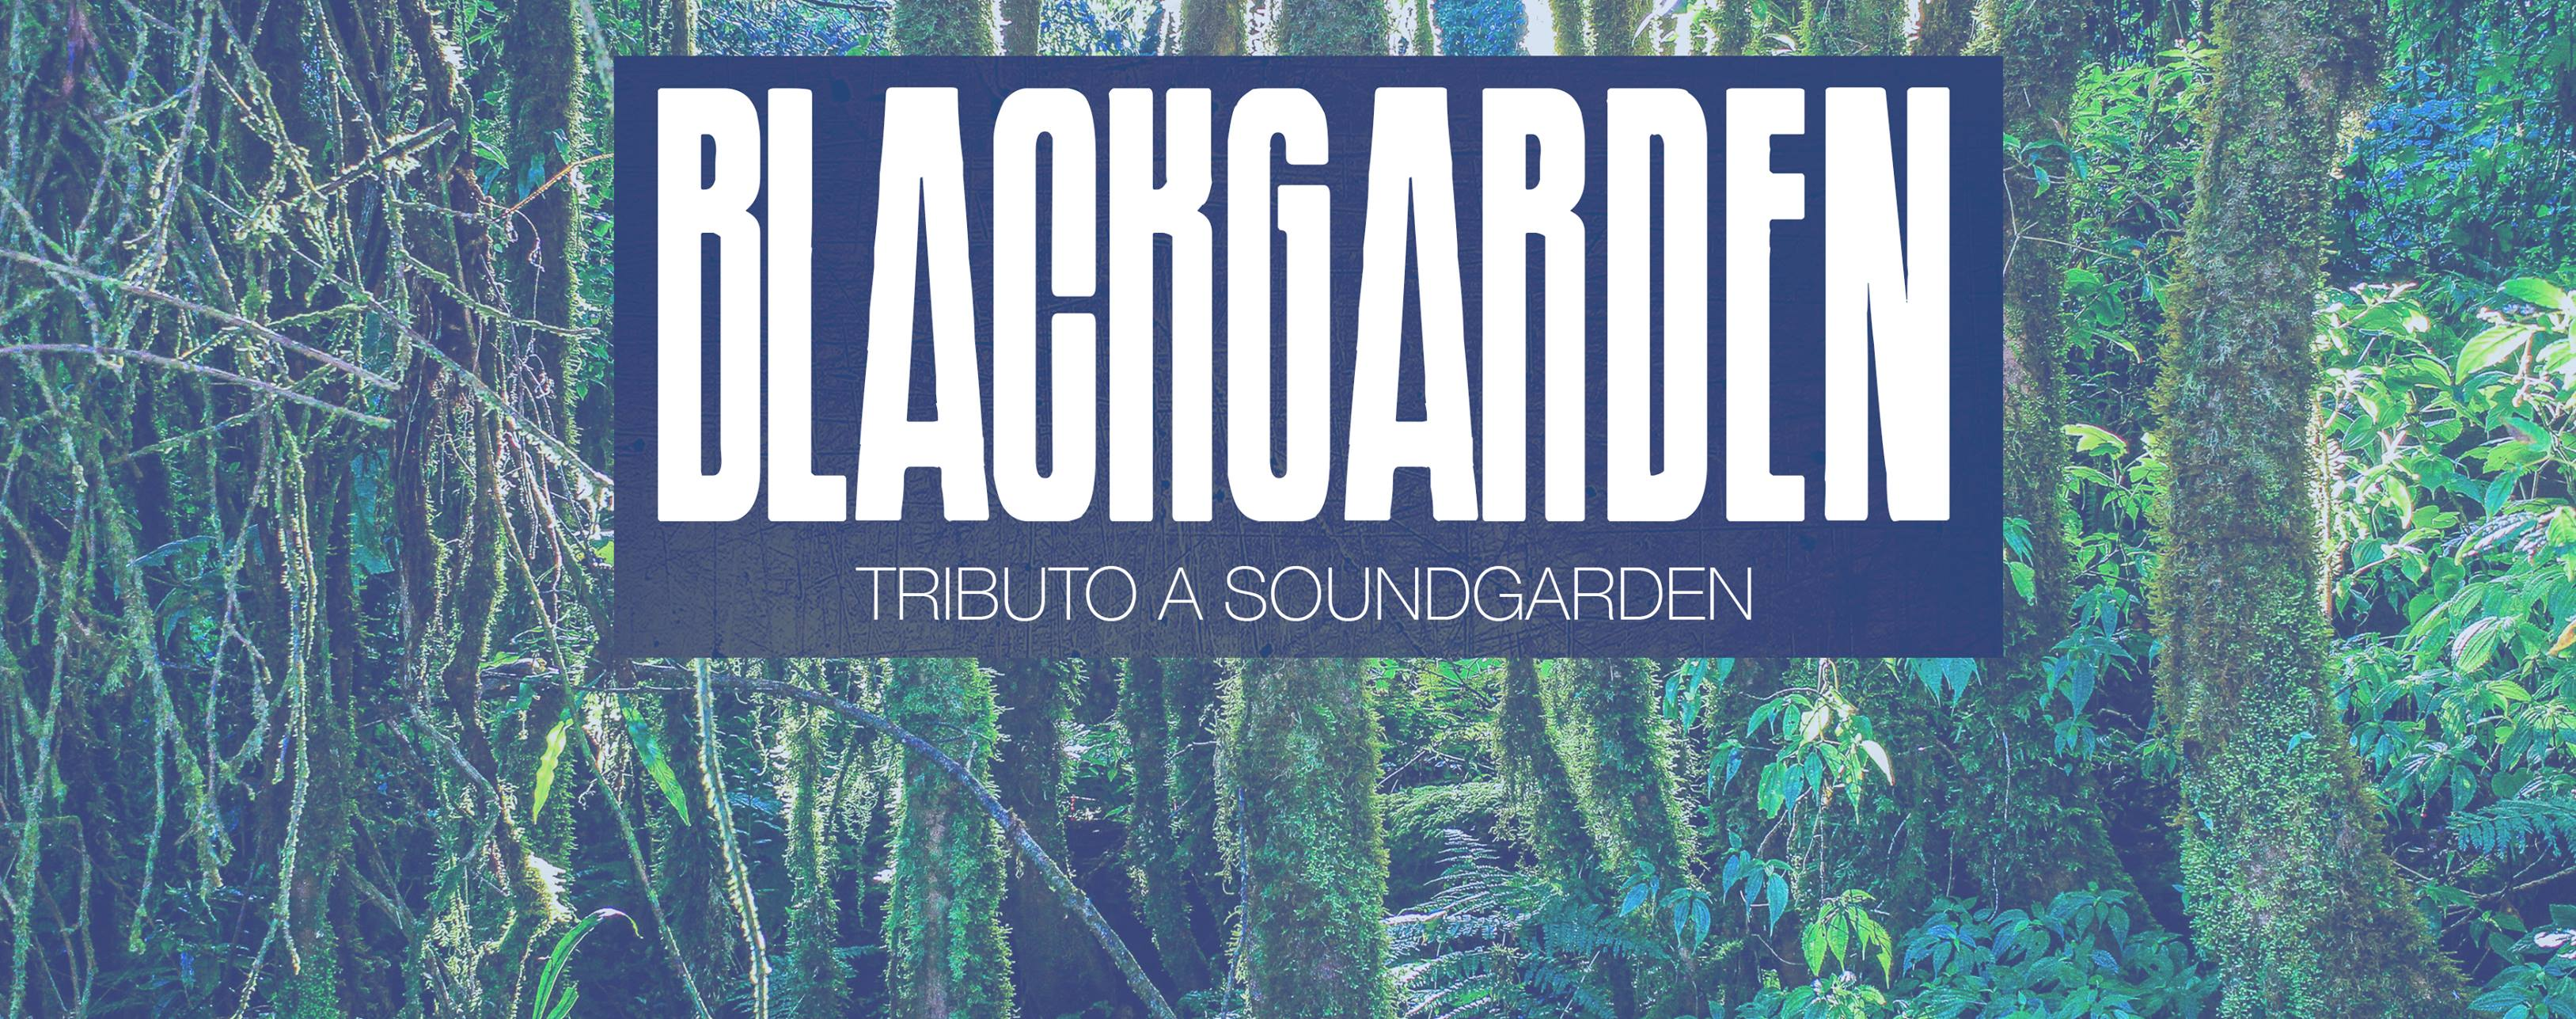 Blackgarden-Tributo a Soundgarden